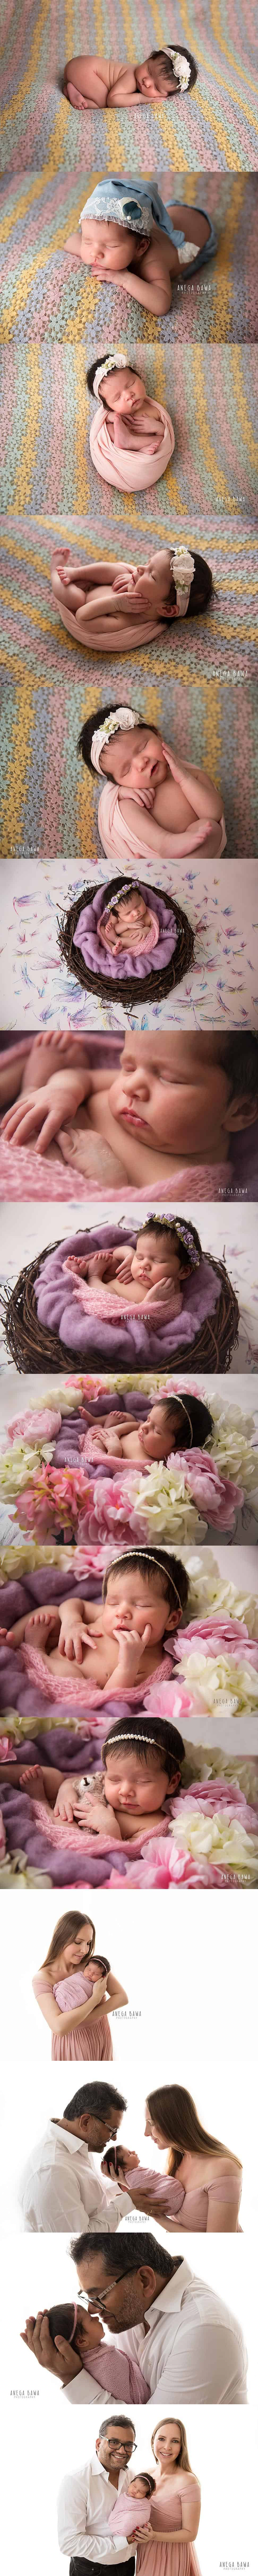 201_best_newborn_photographer_in_delhi_10_days_old_girl_new_born_infant_anega_bawa_photography